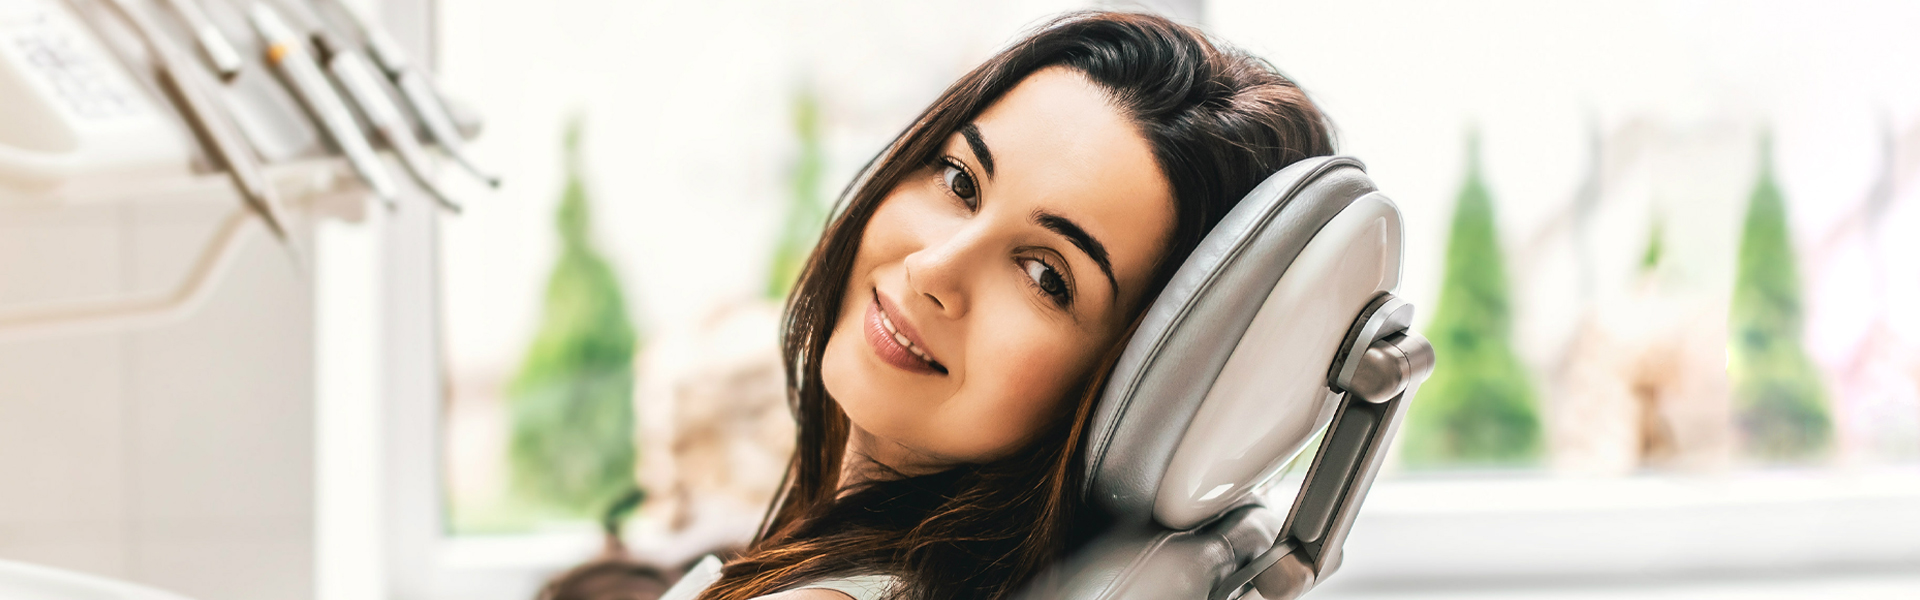 What to Expect During Your Implant Dental Procedure?